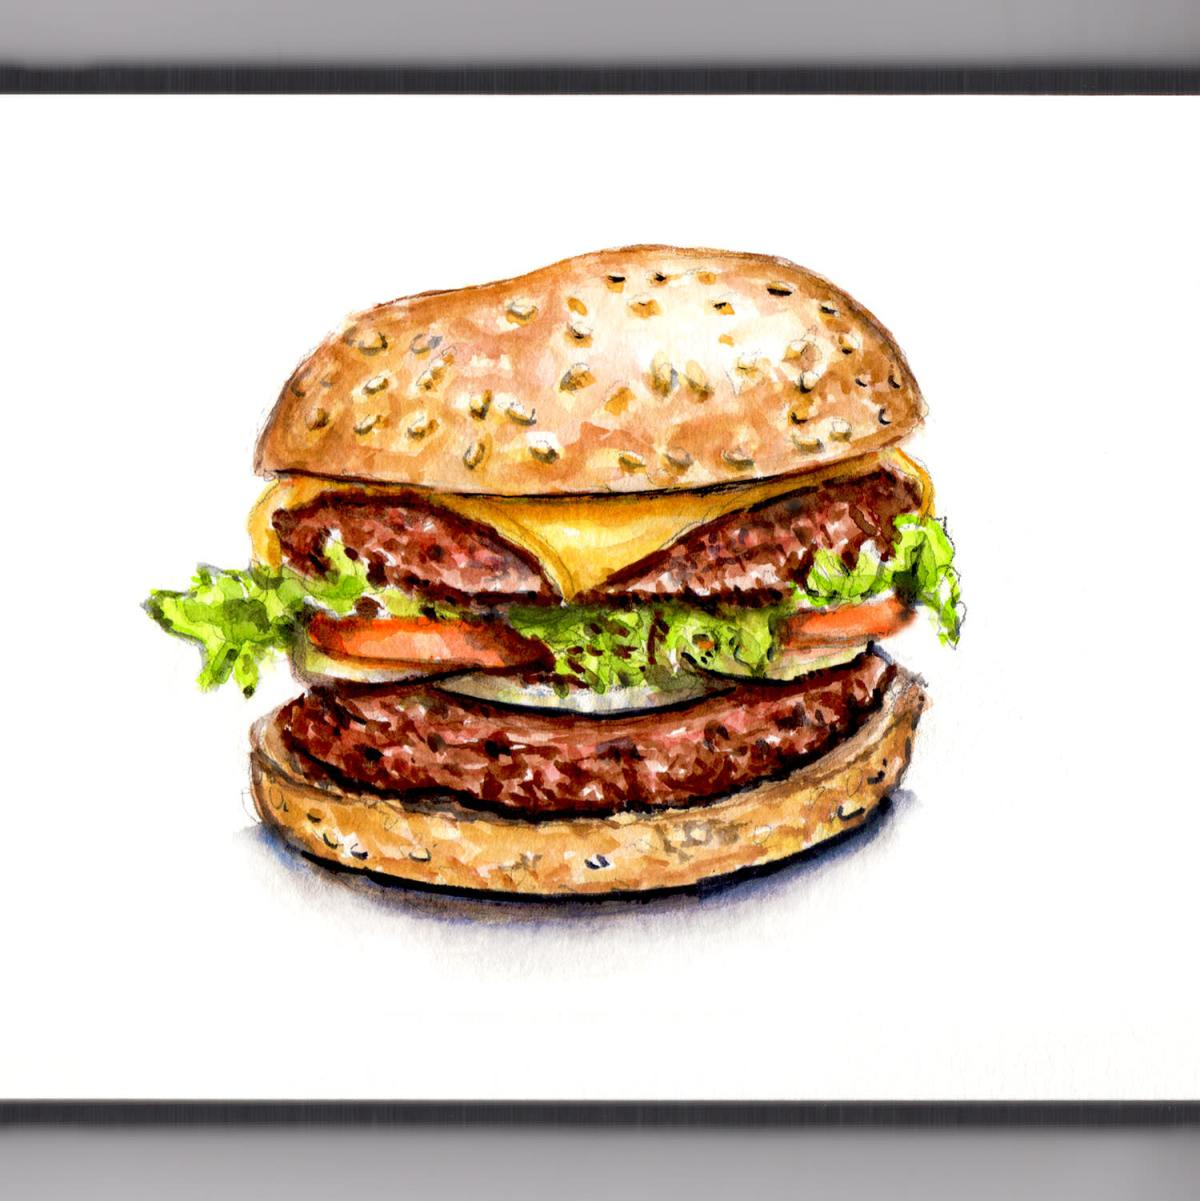 #WorldWatercolorGroup - Double Cheeseburger With Lettuce Tomato And Onion Illustration Watercolor - #doodlewash